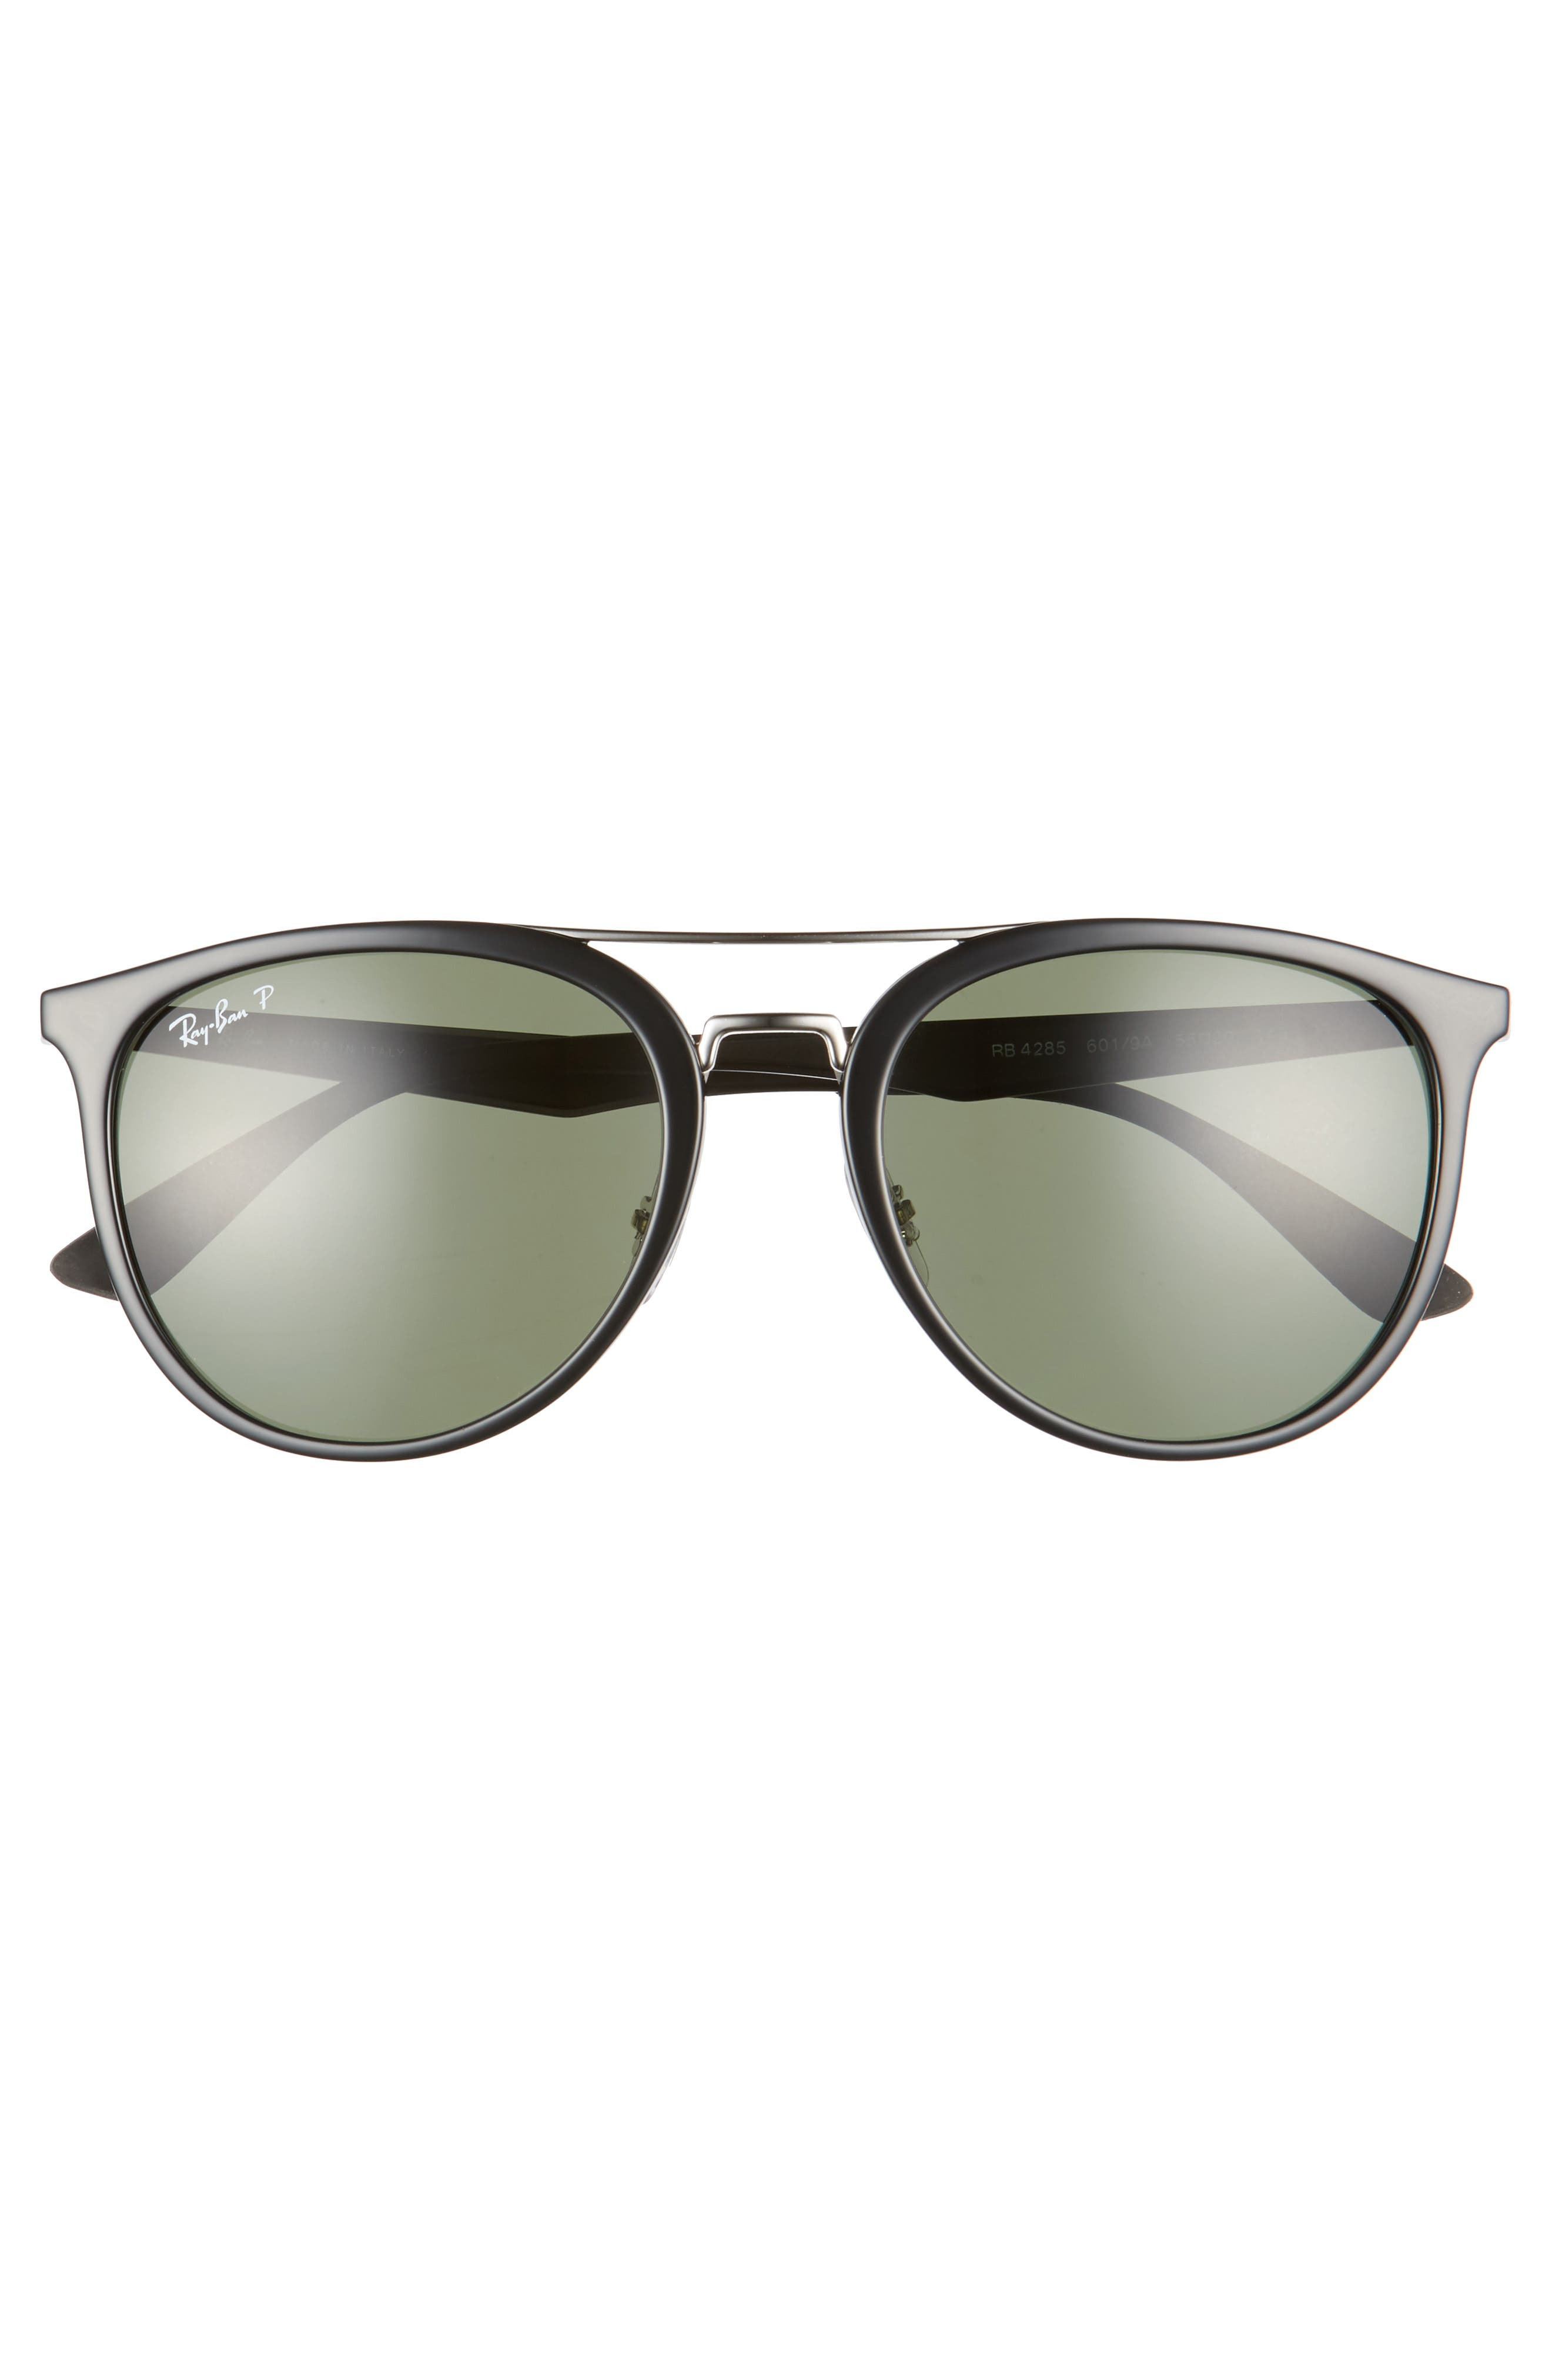 55mm Retro Polarized Sunglasses,                             Alternate thumbnail 2, color,                             001